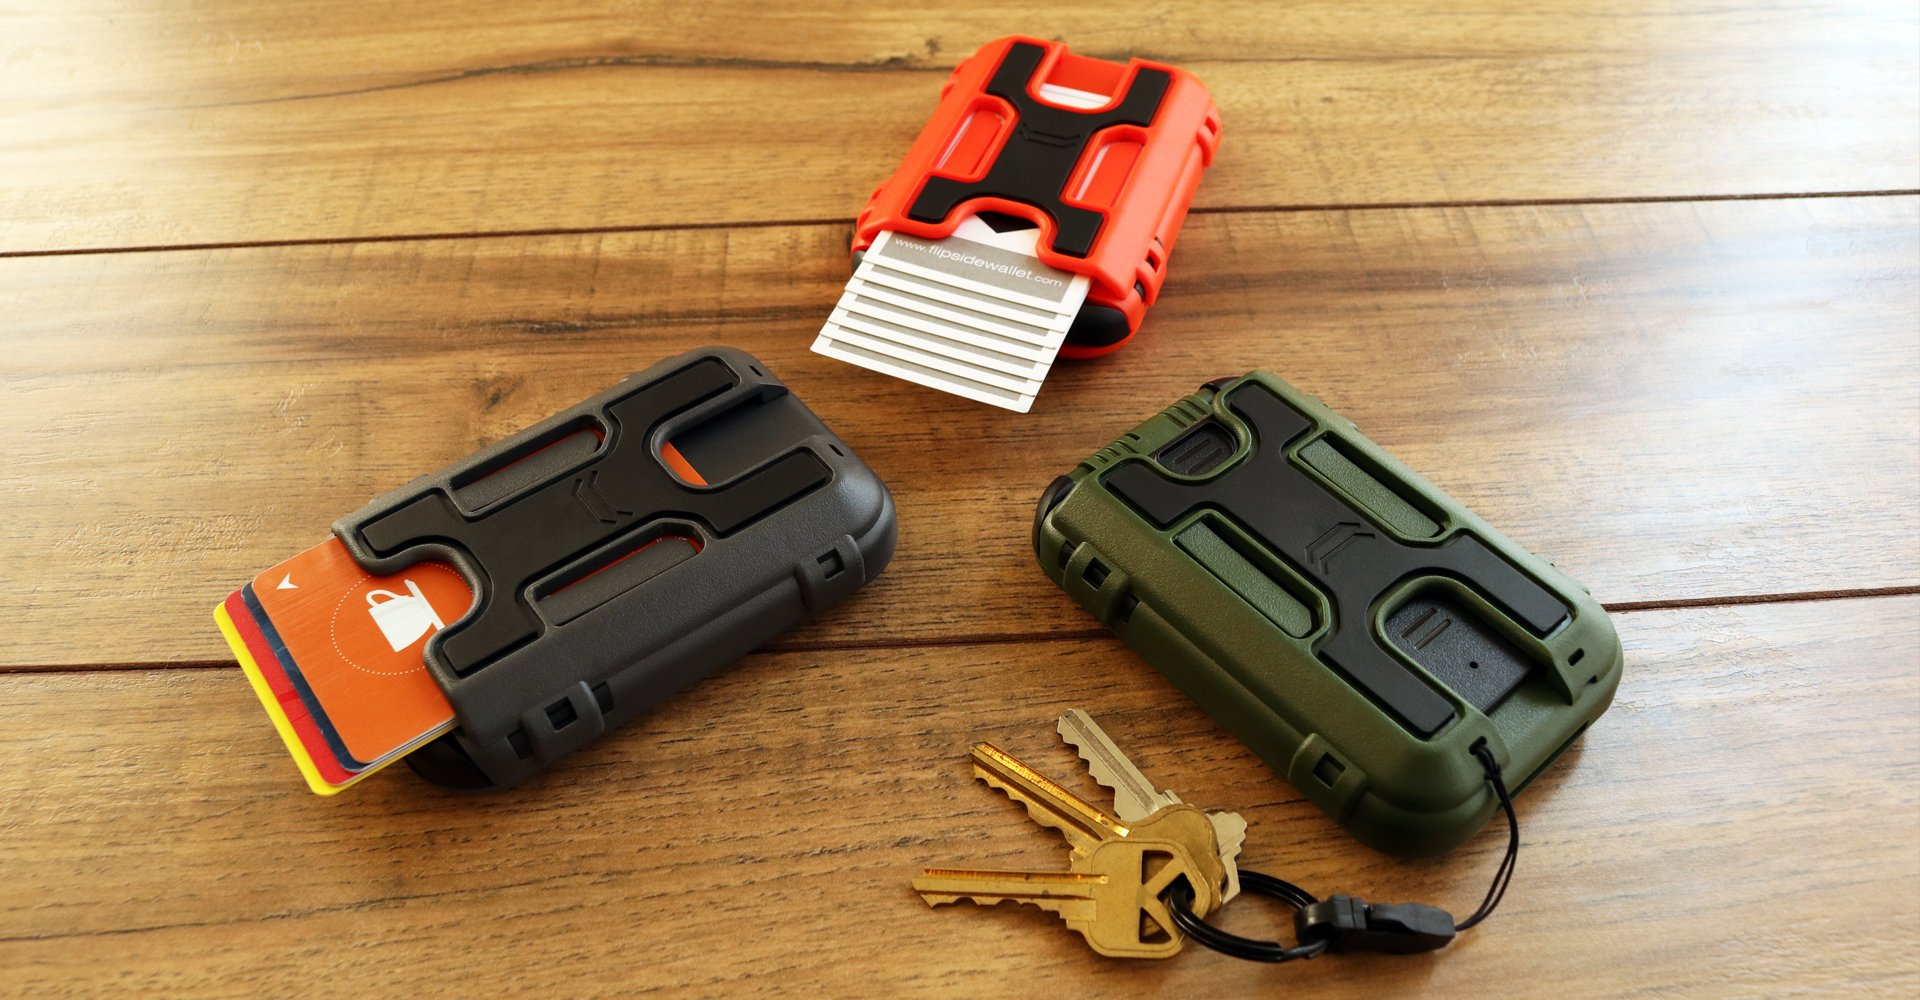 modular wallet attachments for your flipside wallet that increases its capacity